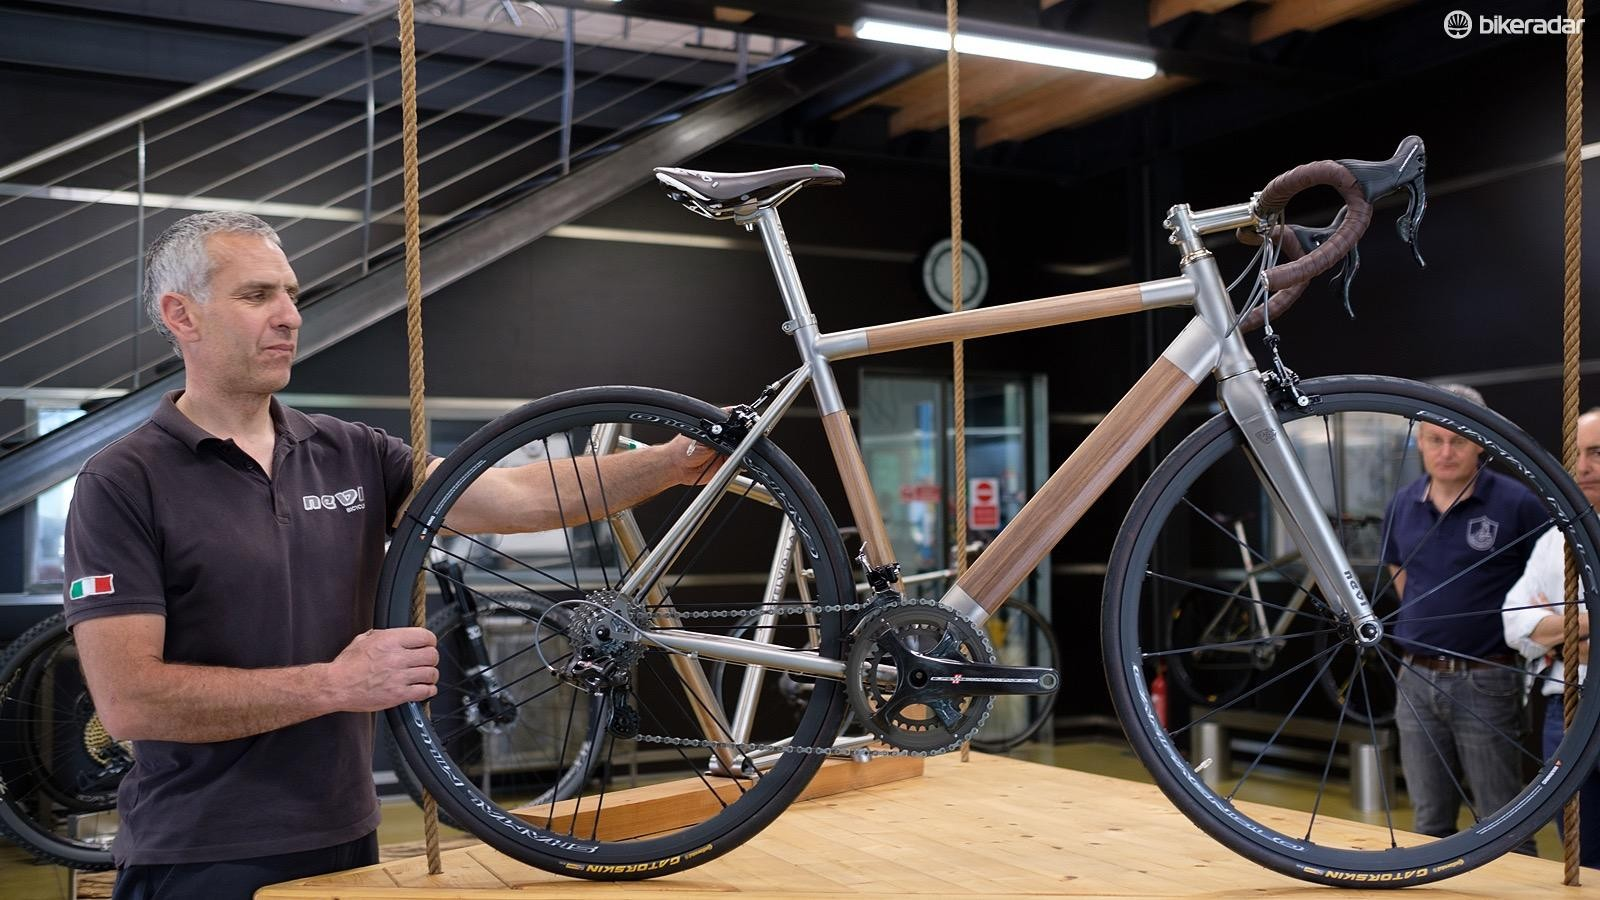 The Titanio Legno in the hands of its builder and Nevi founder Sergio Finazzi